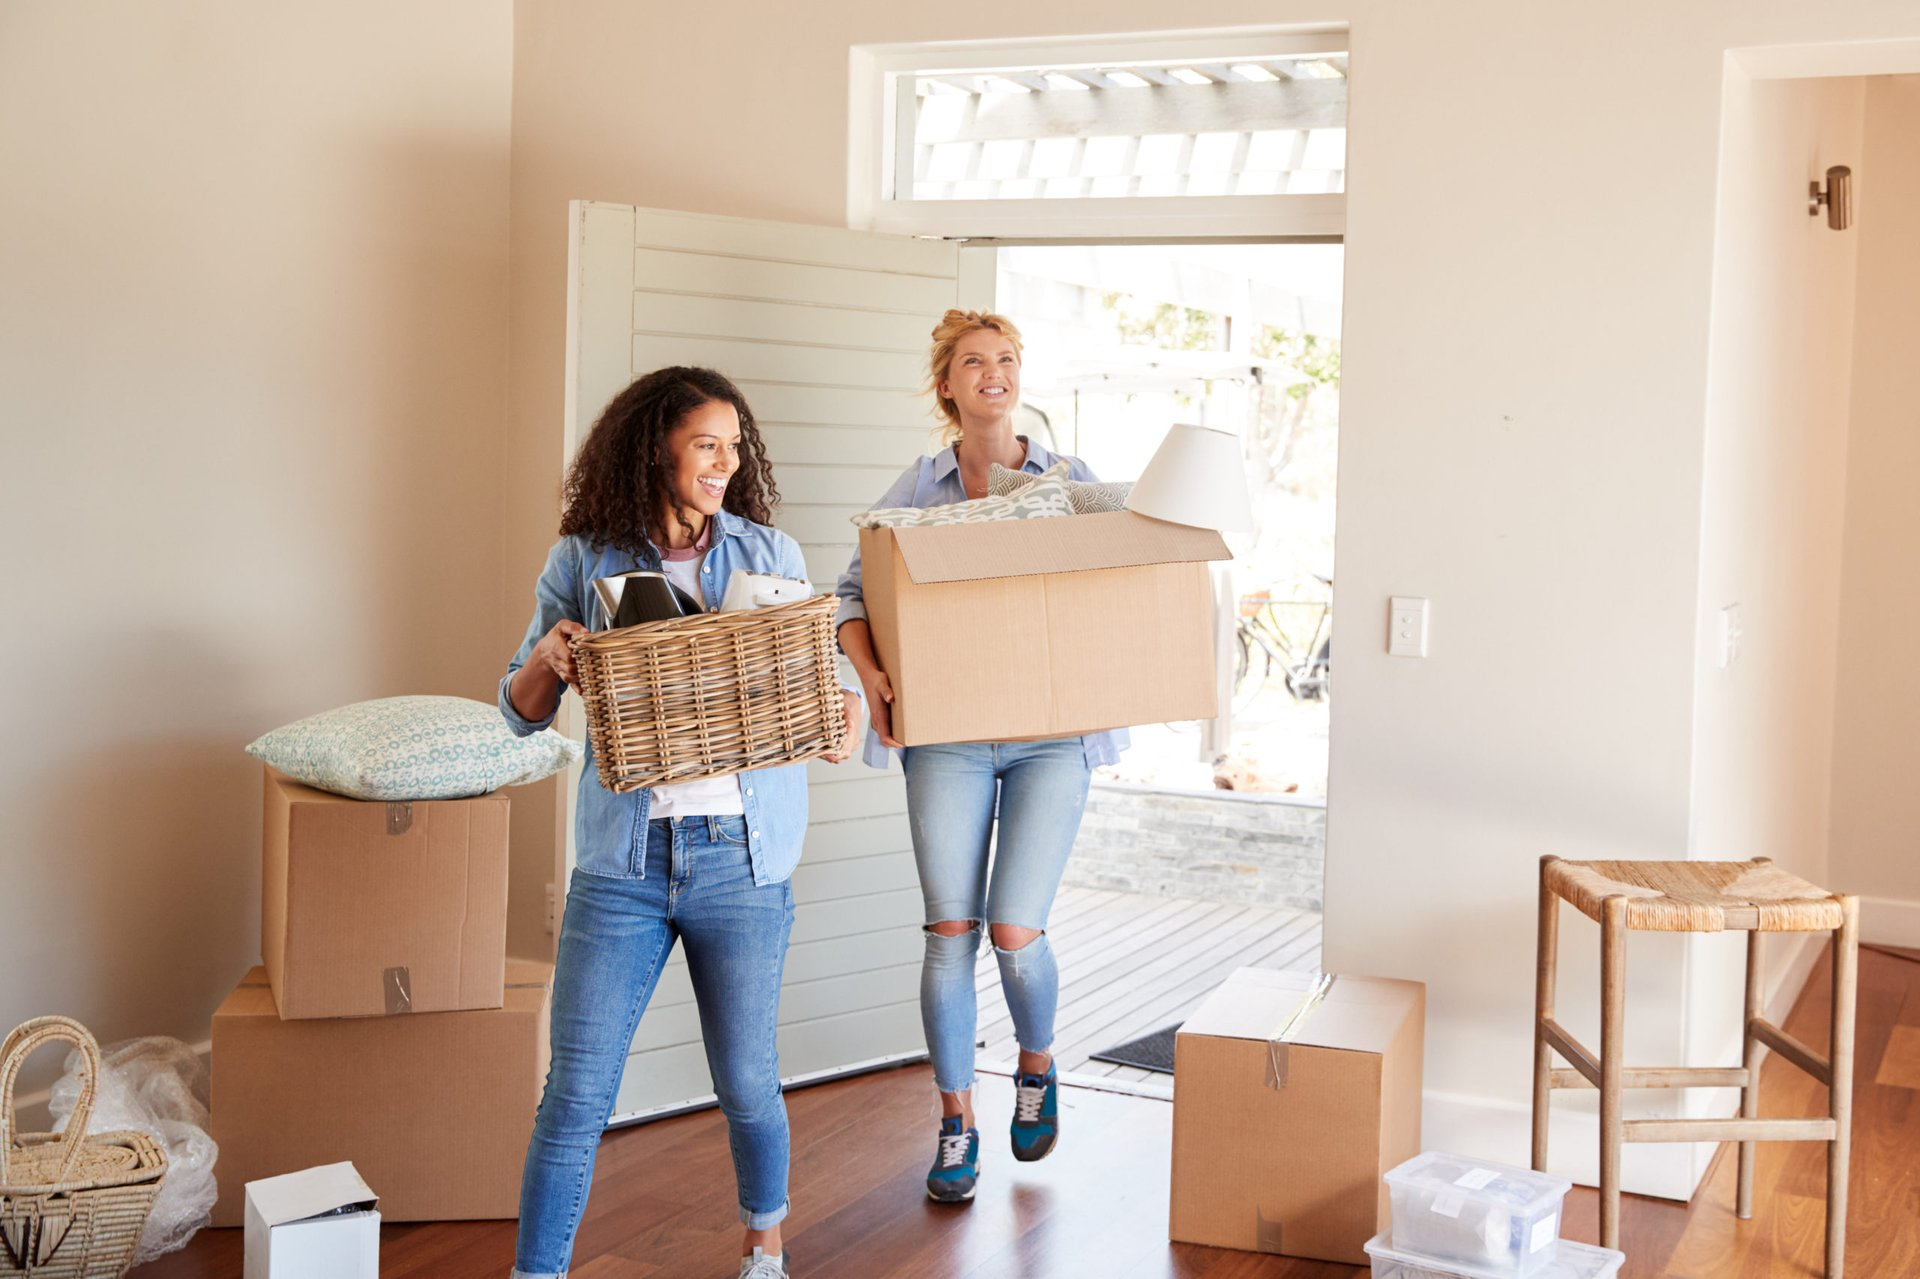 Women carrying moving boxes